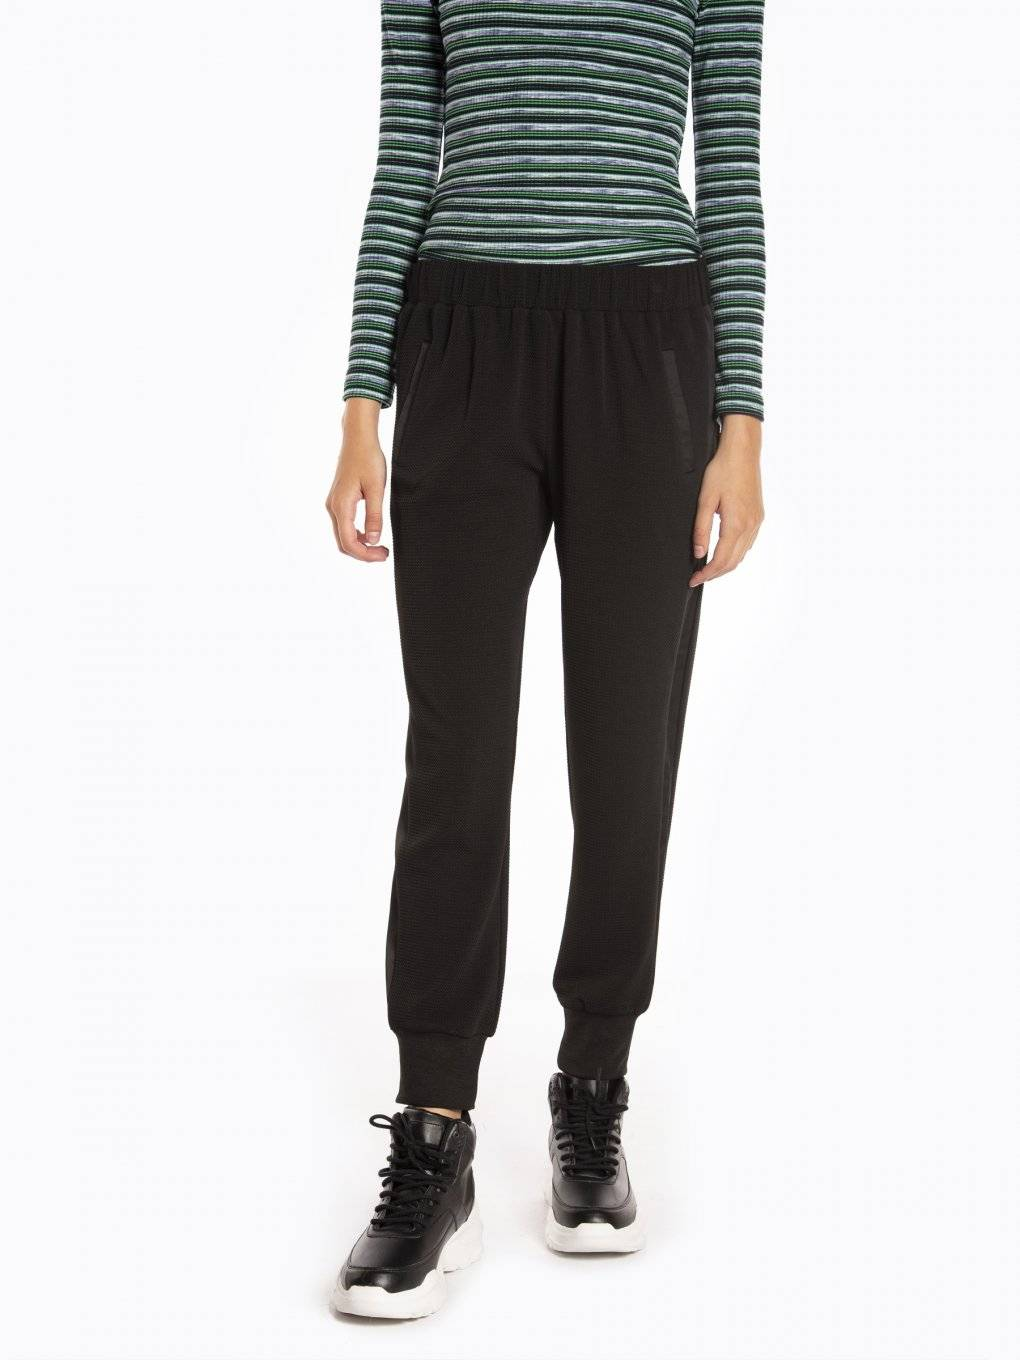 Combined stretchy jogger trousers